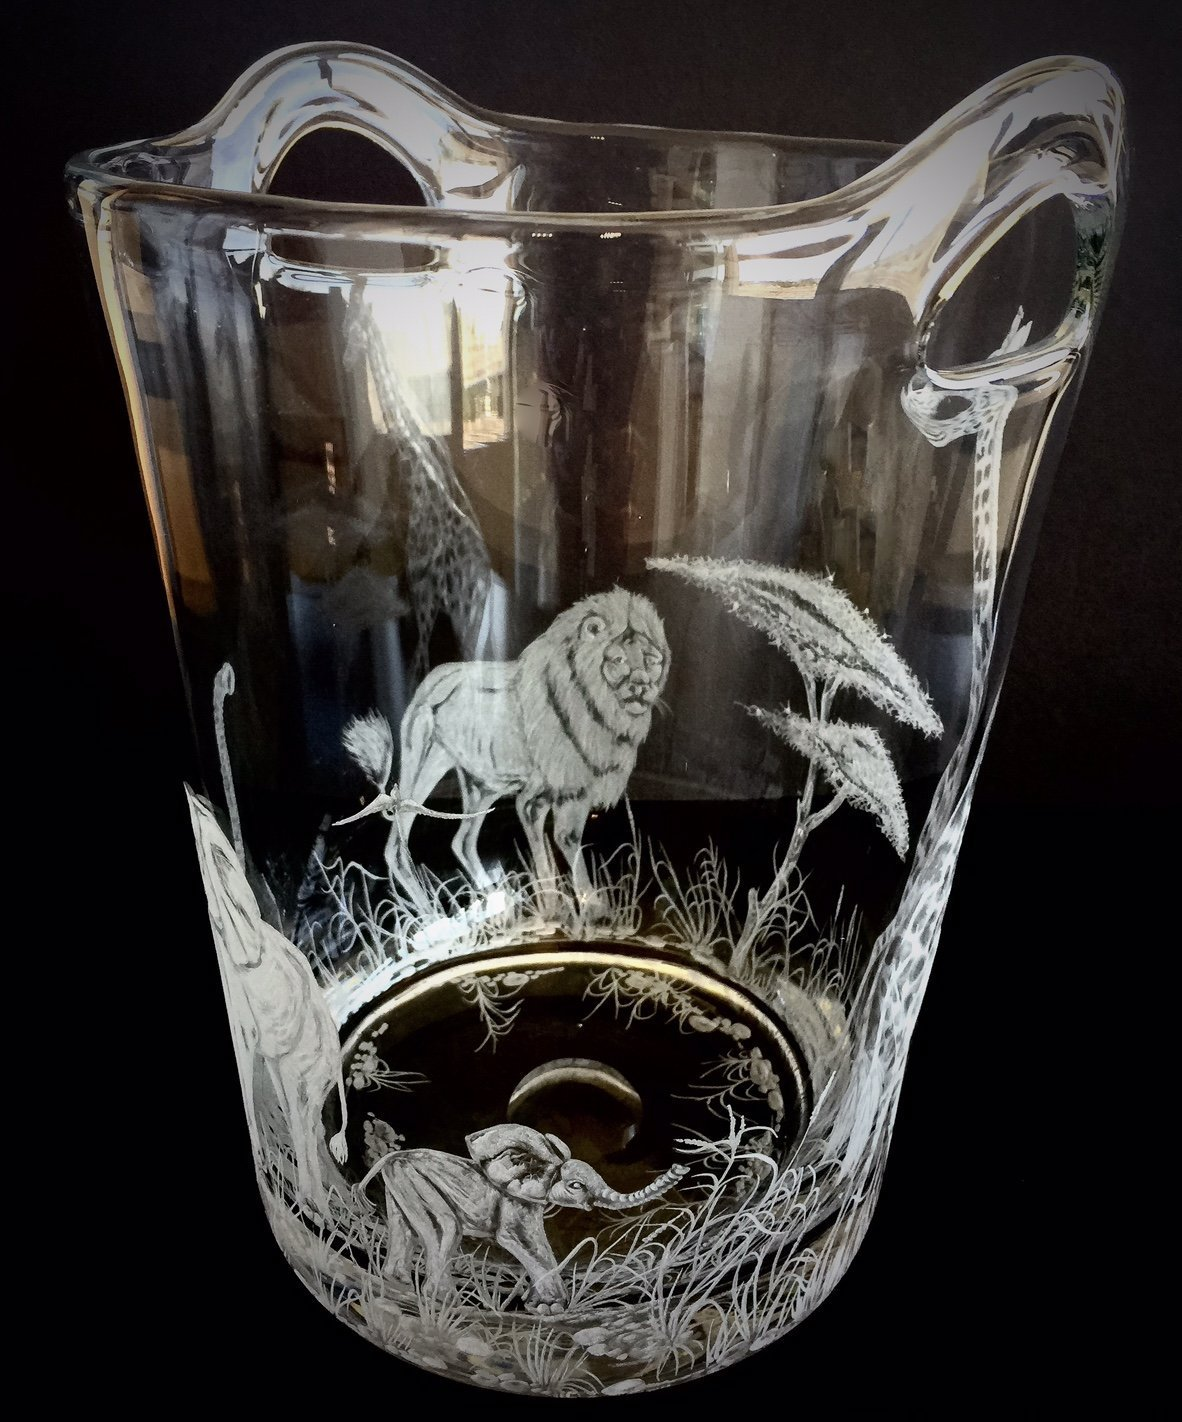 Hand Engraved Ice Bucket African Animals, Lion, Giraffe and Elephant, African Safari Scene, Engraved Bar Ware, Wedding Gifts Etched by Akoko Art Handengraved Crystal Glass (Image #5)